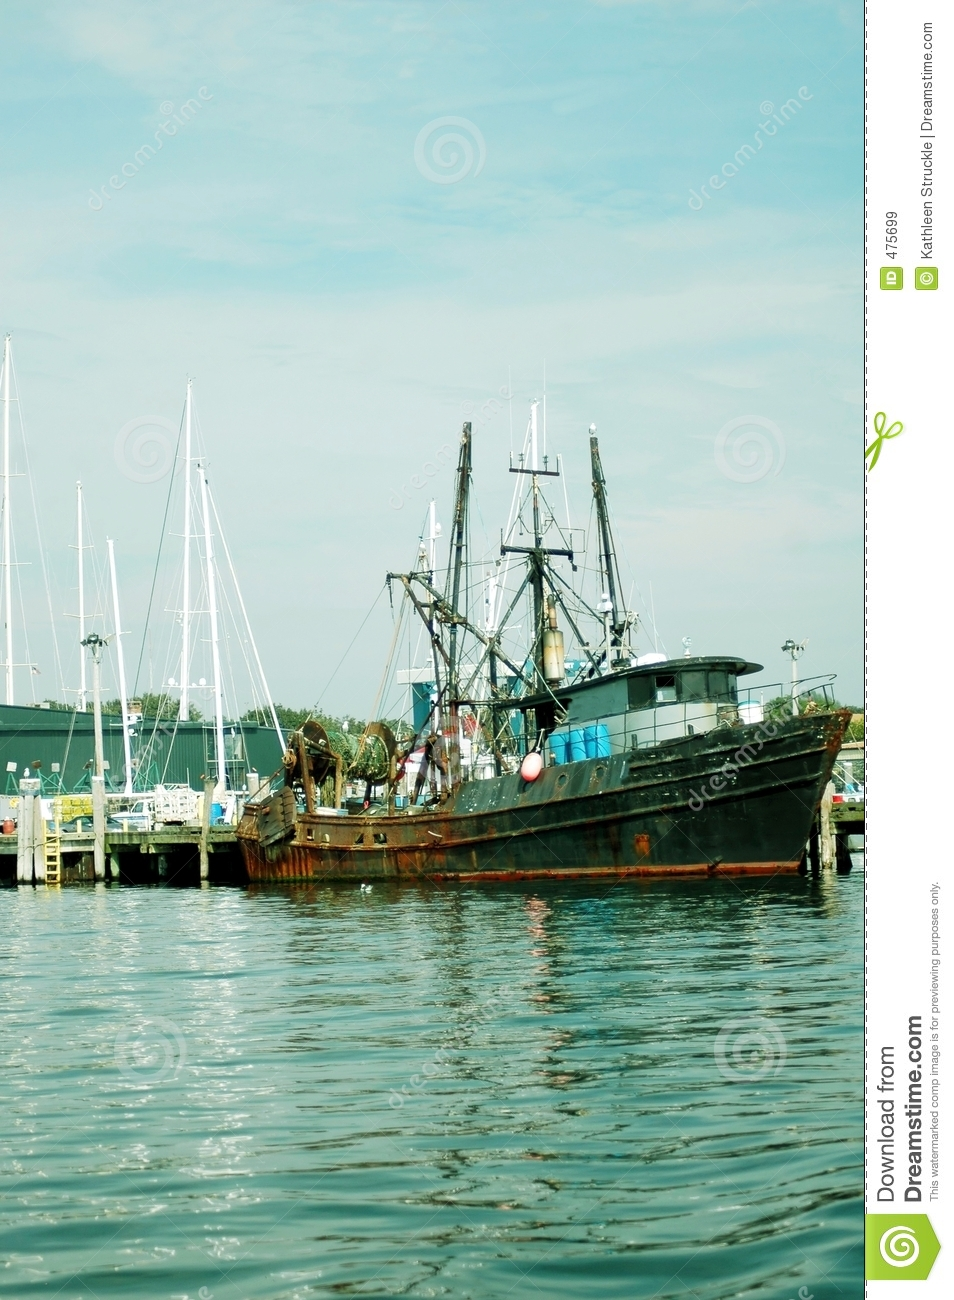 Fishing boat royalty free stock images image 475699 for Newport harbor fishing